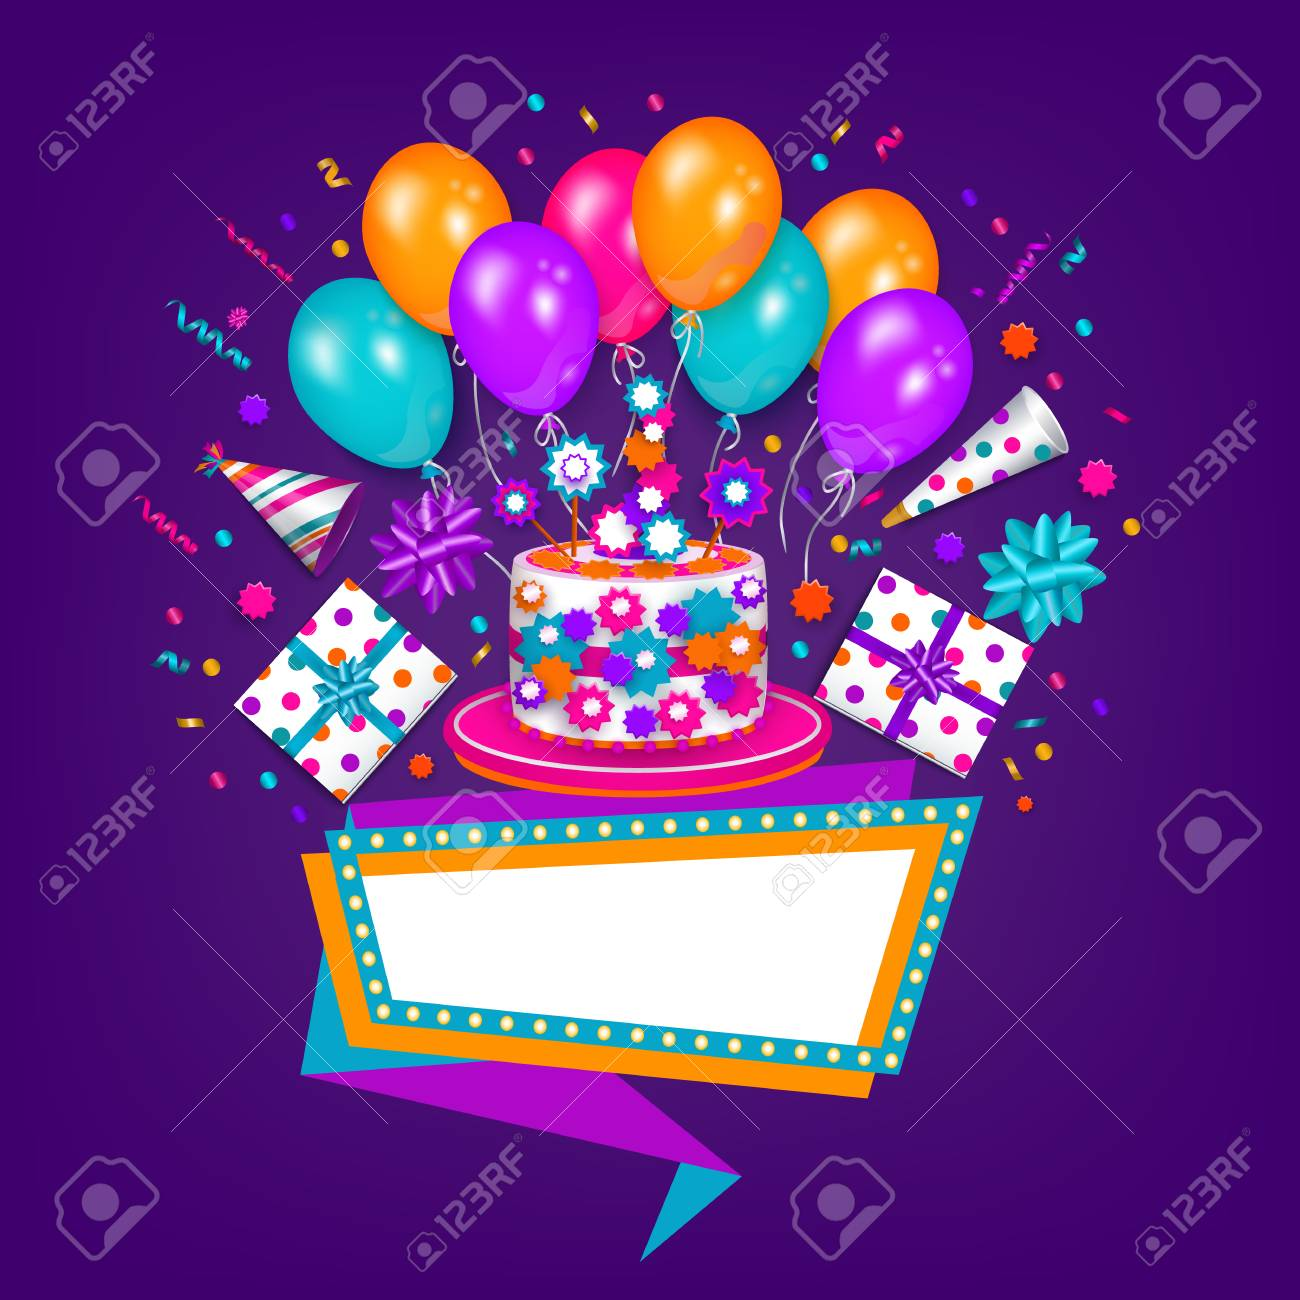 Happy Birthday Greeting Card Poster Design With Cake Present Party Hat Balloon